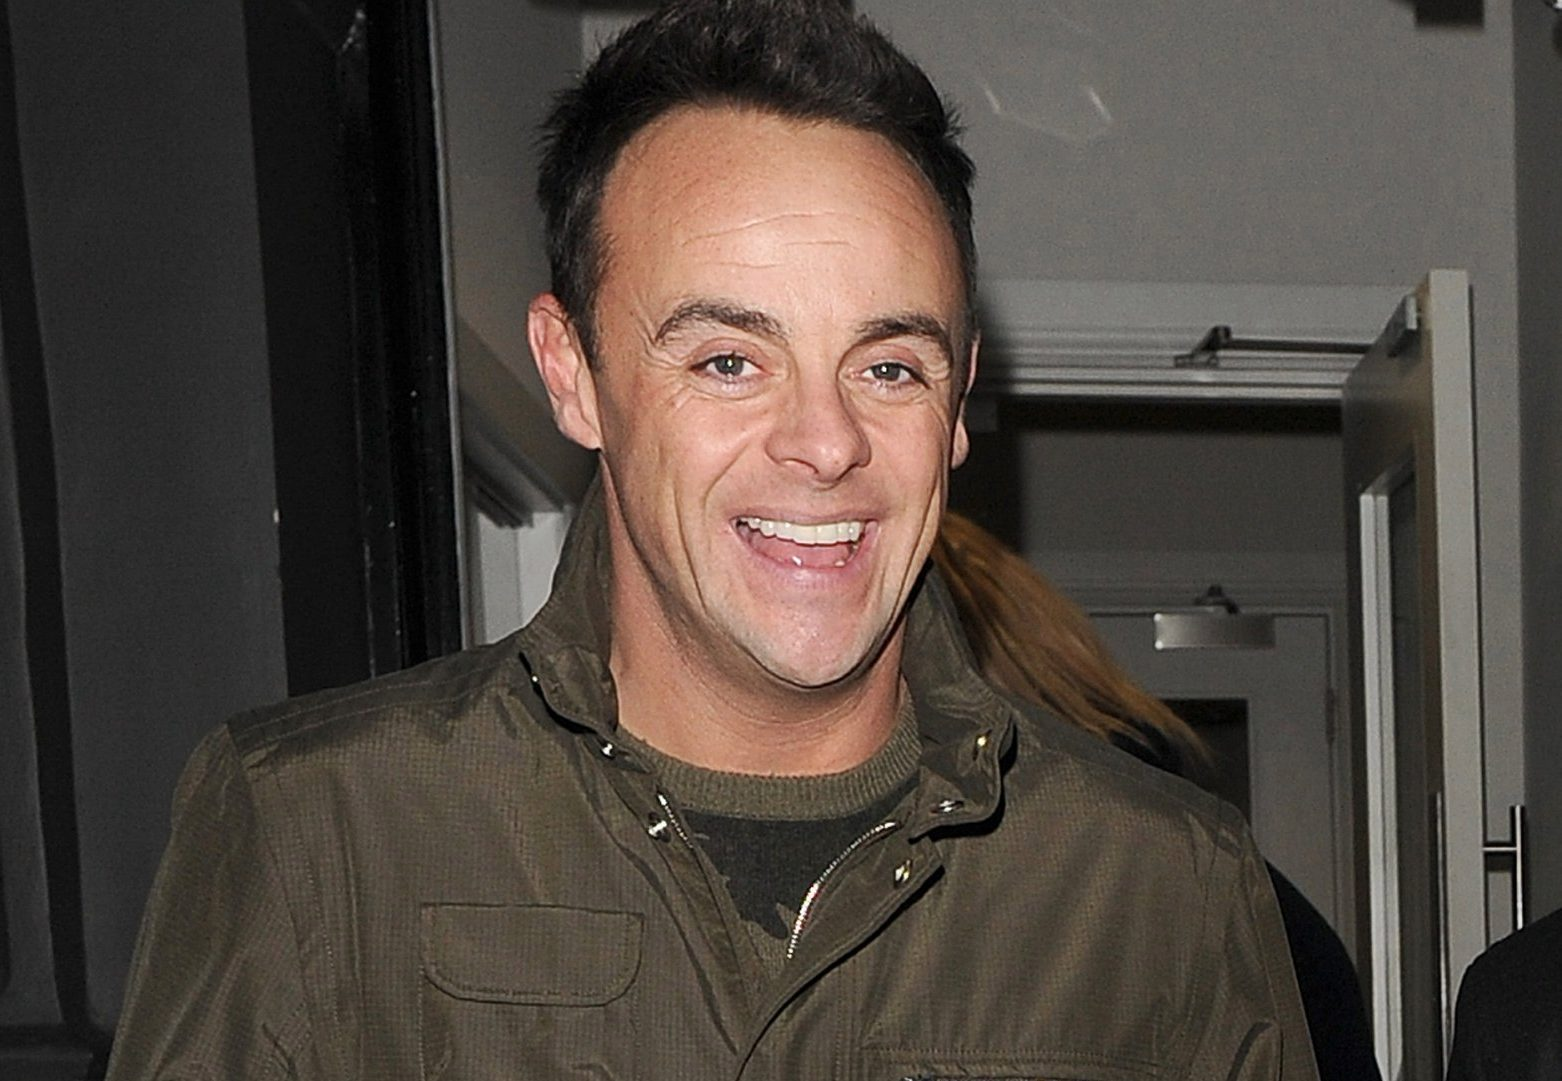 Ant McPartlin's struggle with addiction to be explored in Channel 5 documentary